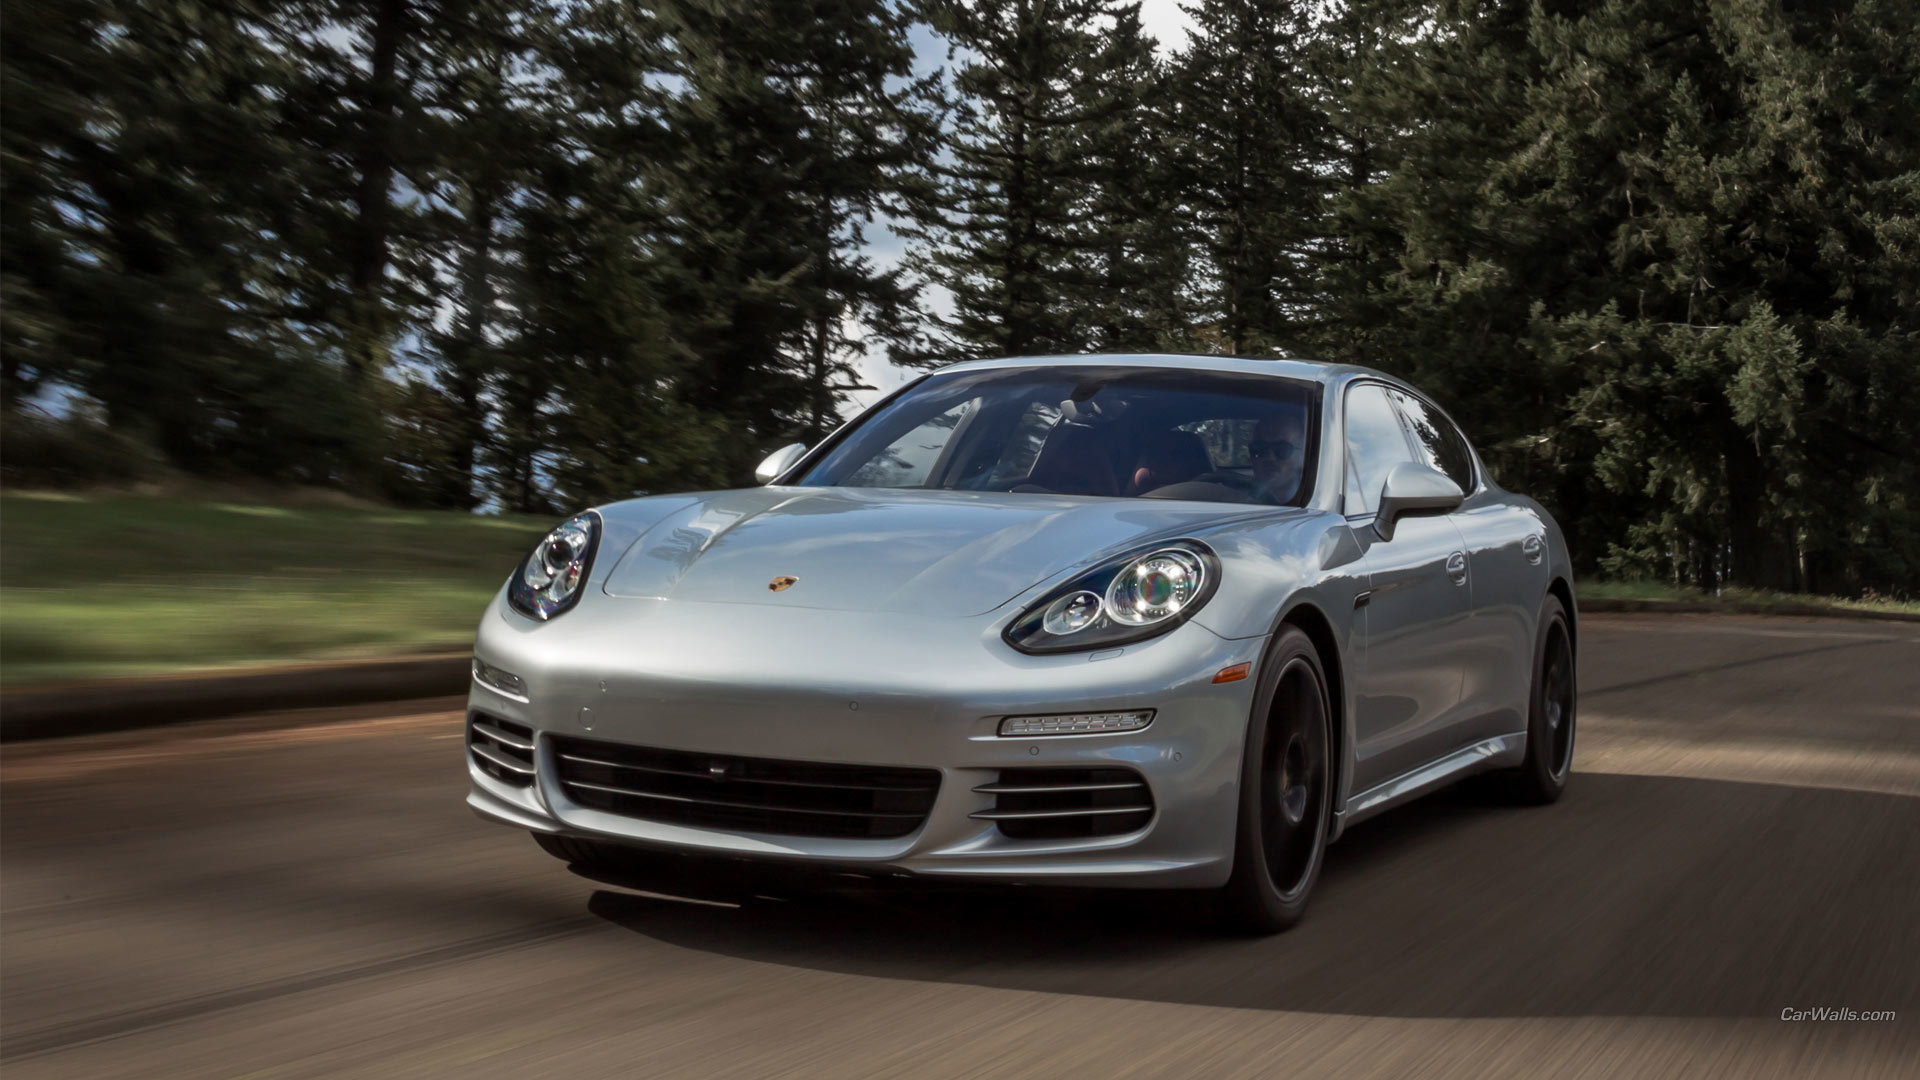 Free Porsche Panamera high quality wallpaper ID:27850 for hd 1920x1080 computer